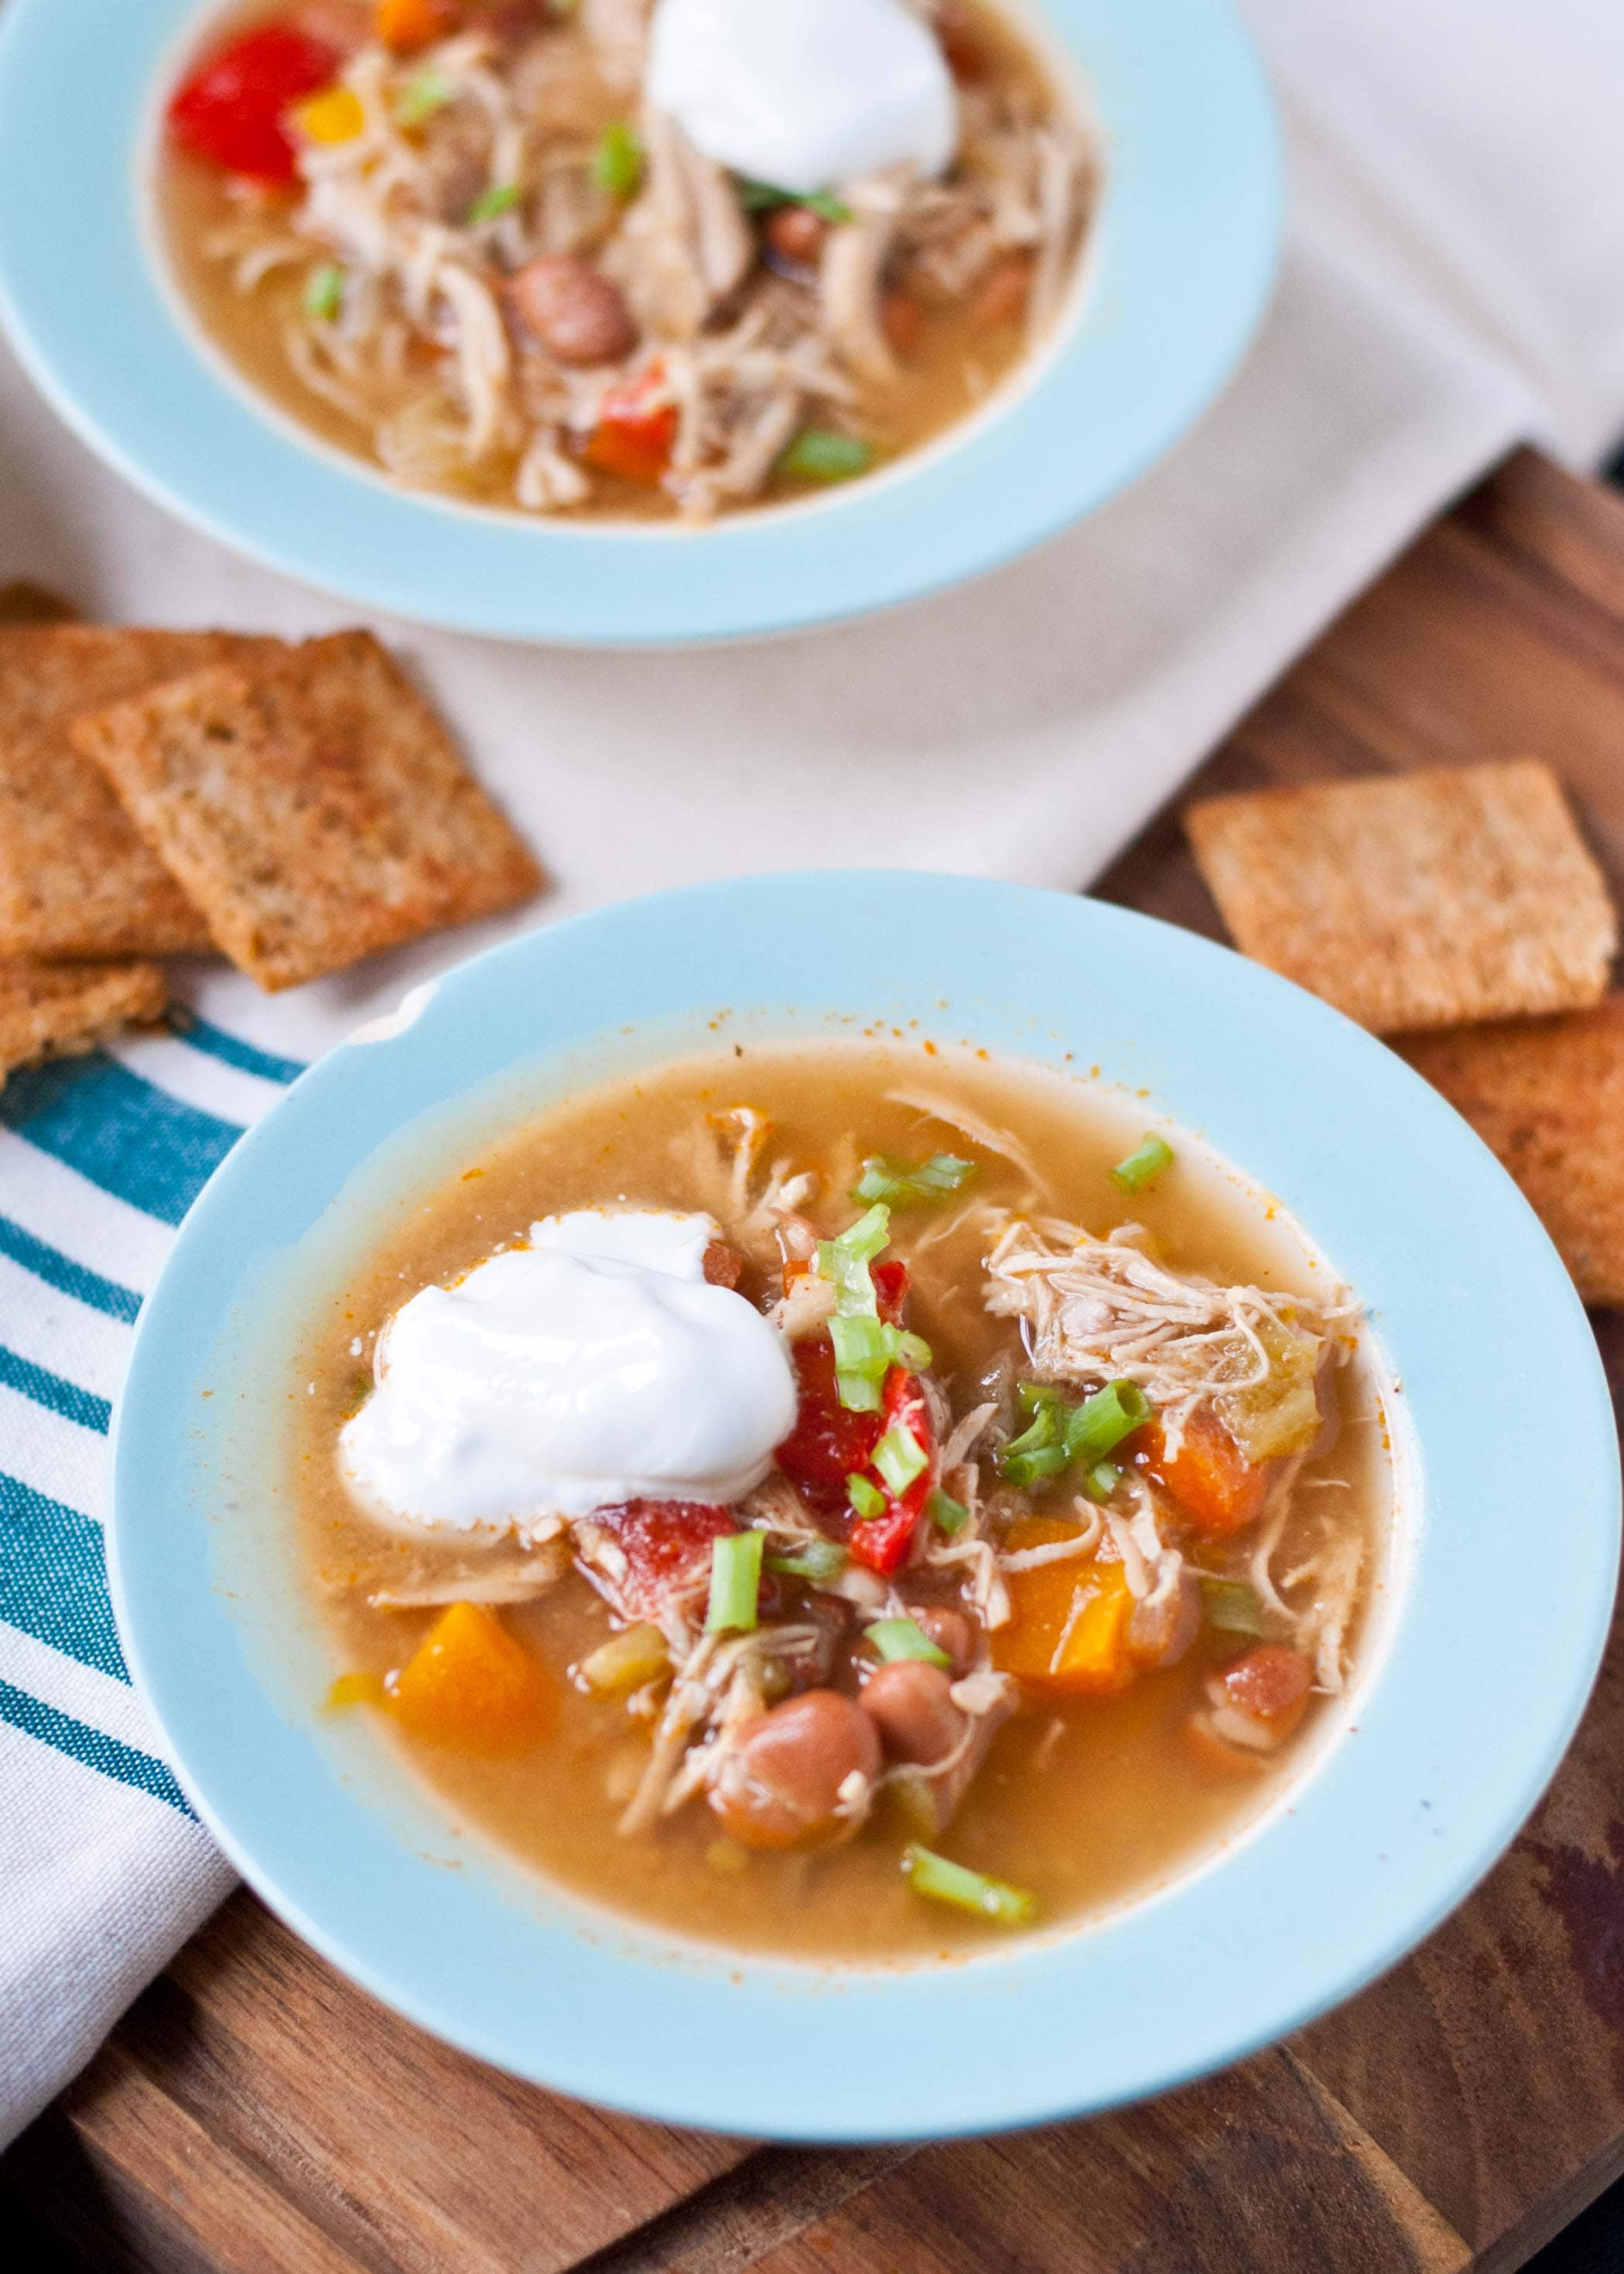 Warm up with this Slow Cooker White Chicken Chili!